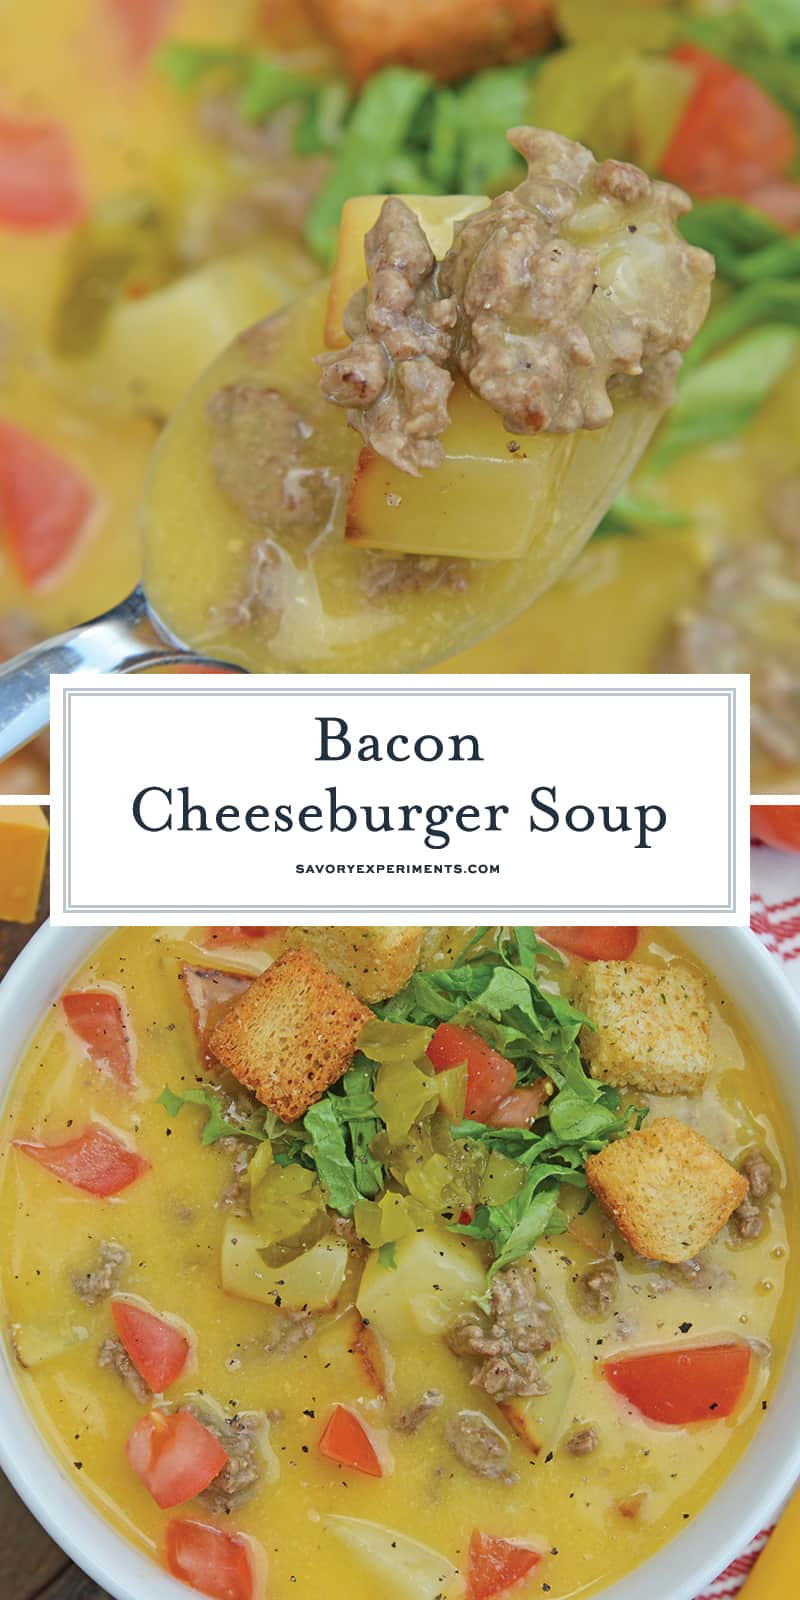 Bacon Cheeseburger Soup takes classic Cheeseburger Soup and adds BACON! Your favorite comfort food in soup form, does it get any better? #baconcheeseburgersoup #cheeseburgersoup www.savoryexperiments.com